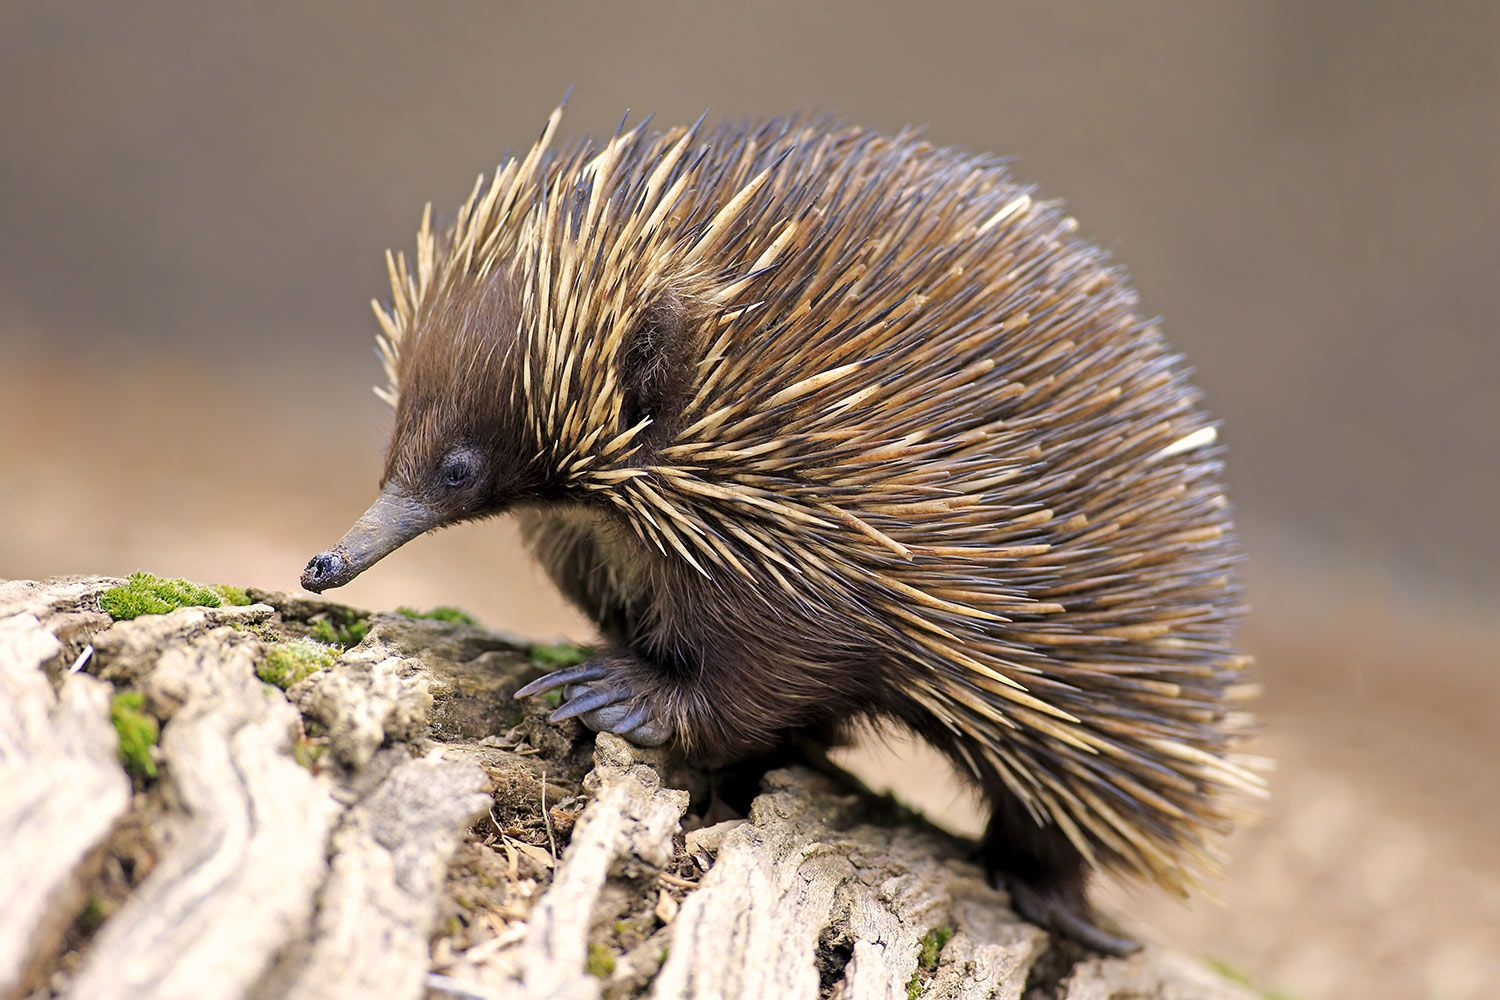 short beaked Echidna lives range includes the entire